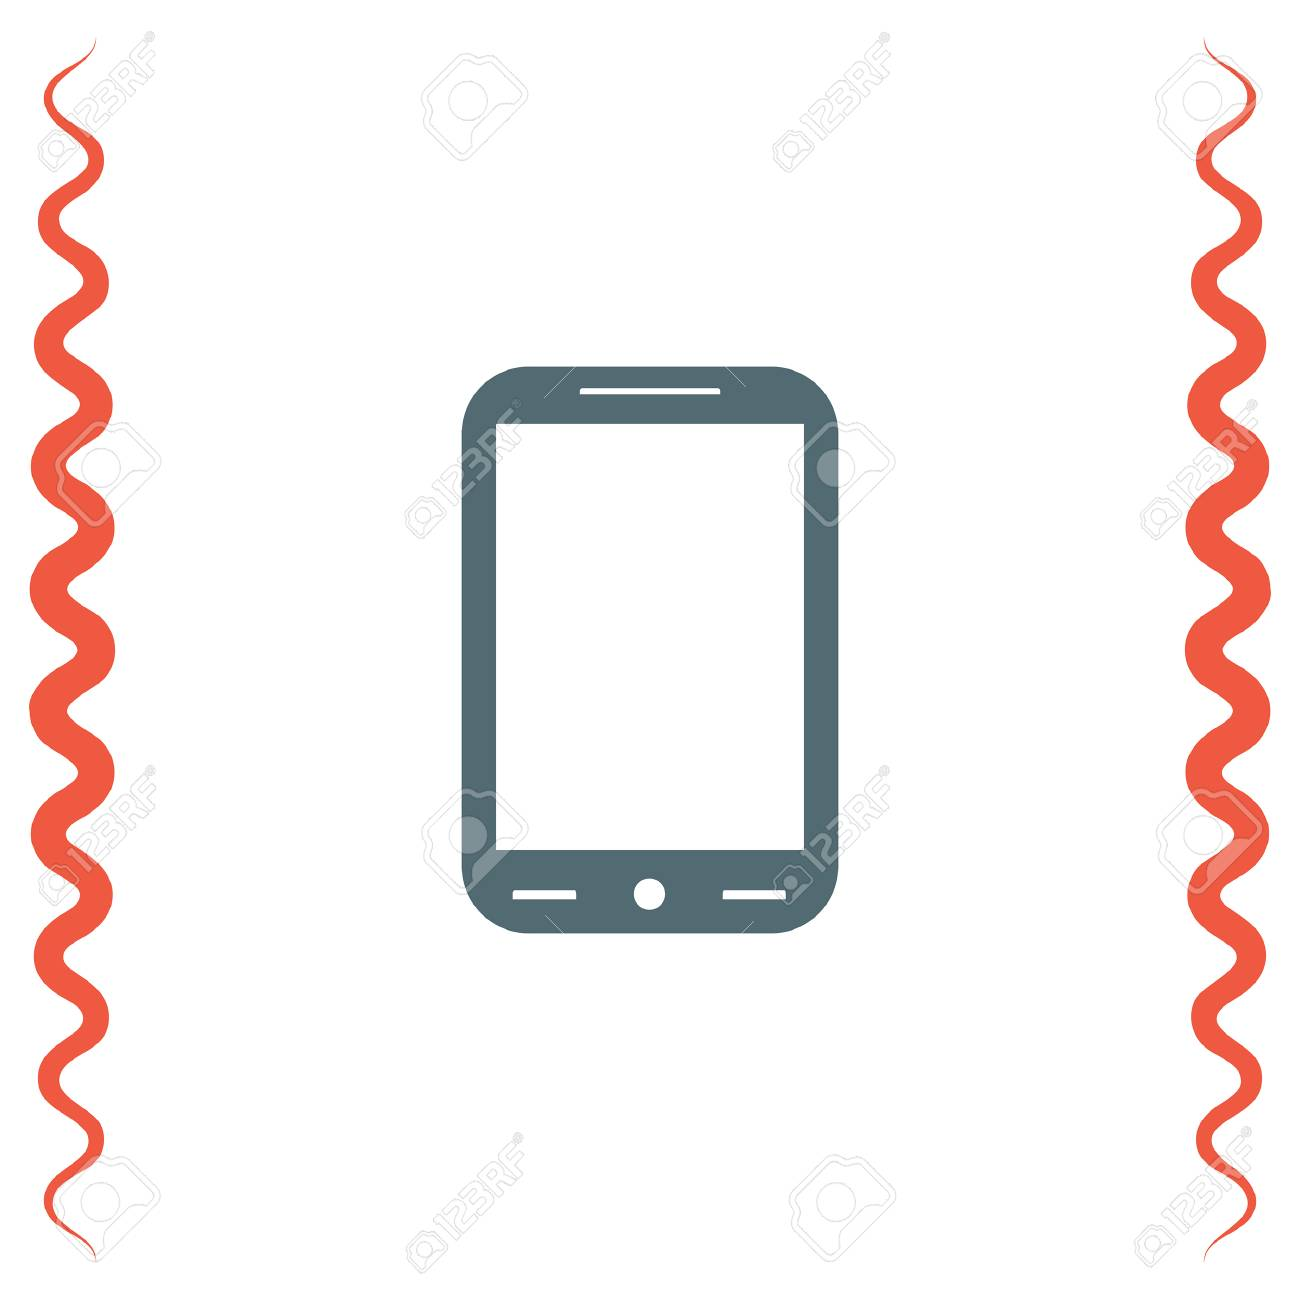 Smart Phone Vector Icon Cell Phone Symbol Royalty Free Cliparts